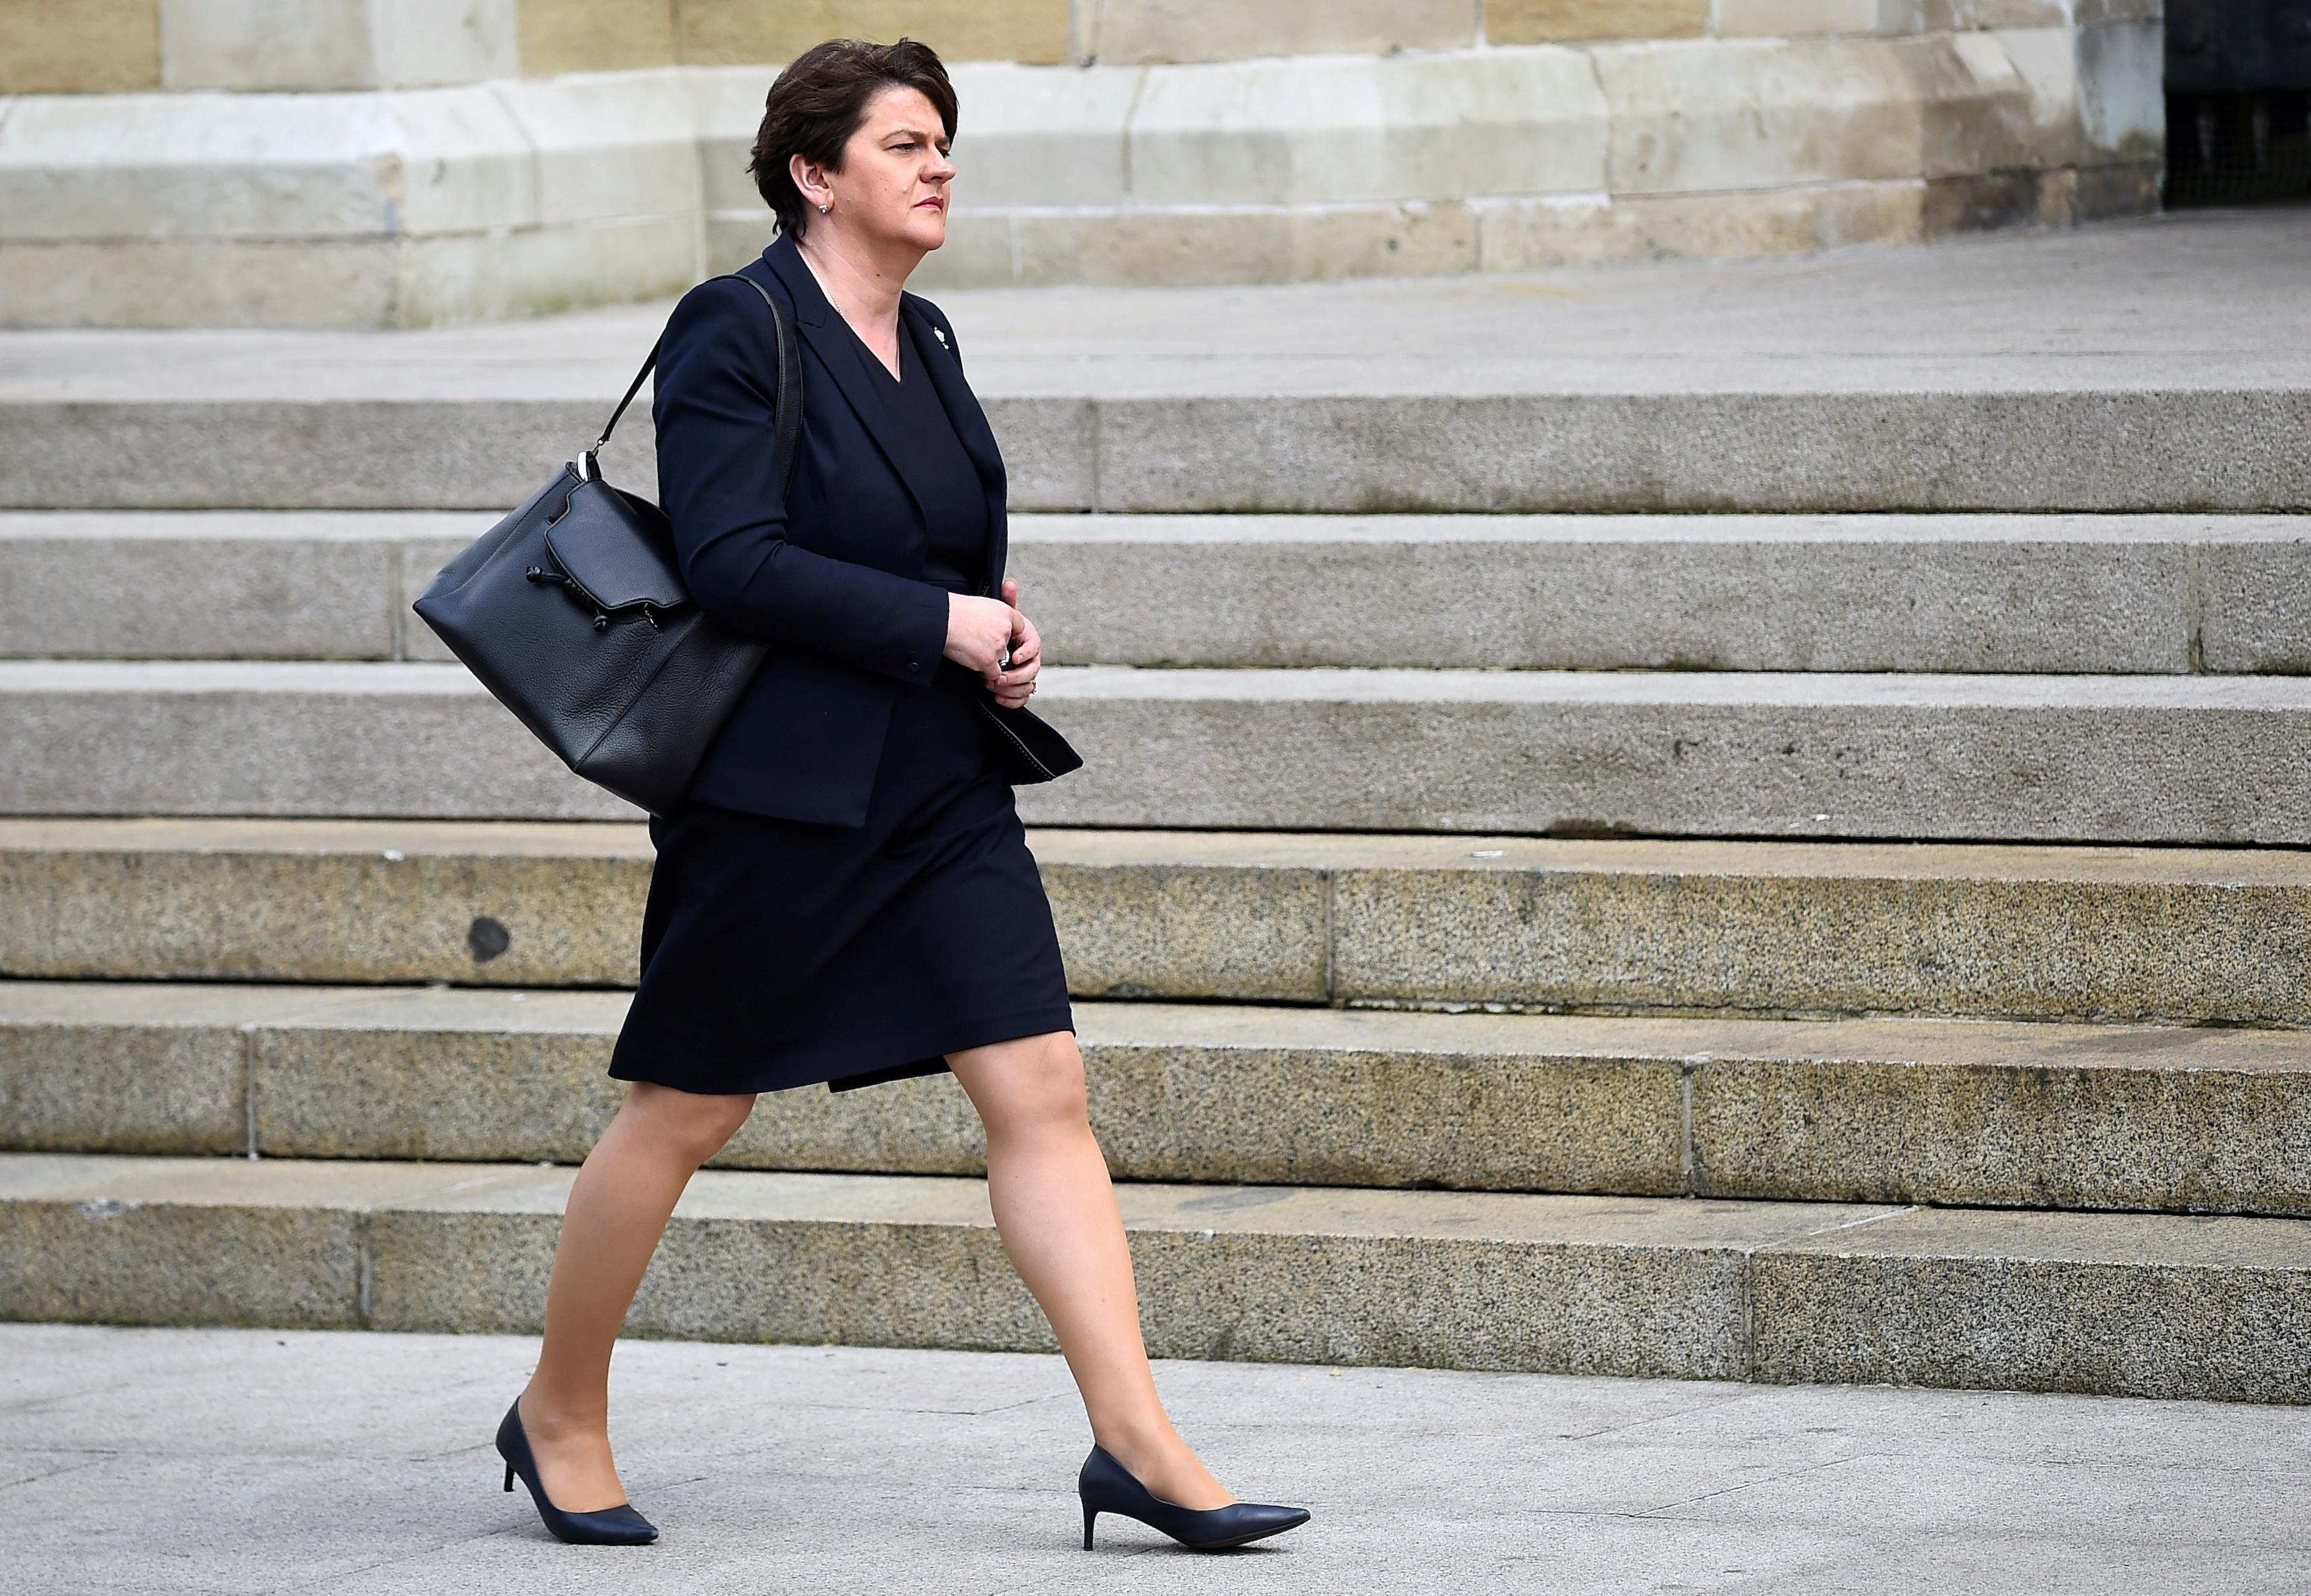 DUP leader meets Irish PM in Dublin to discuss backstop